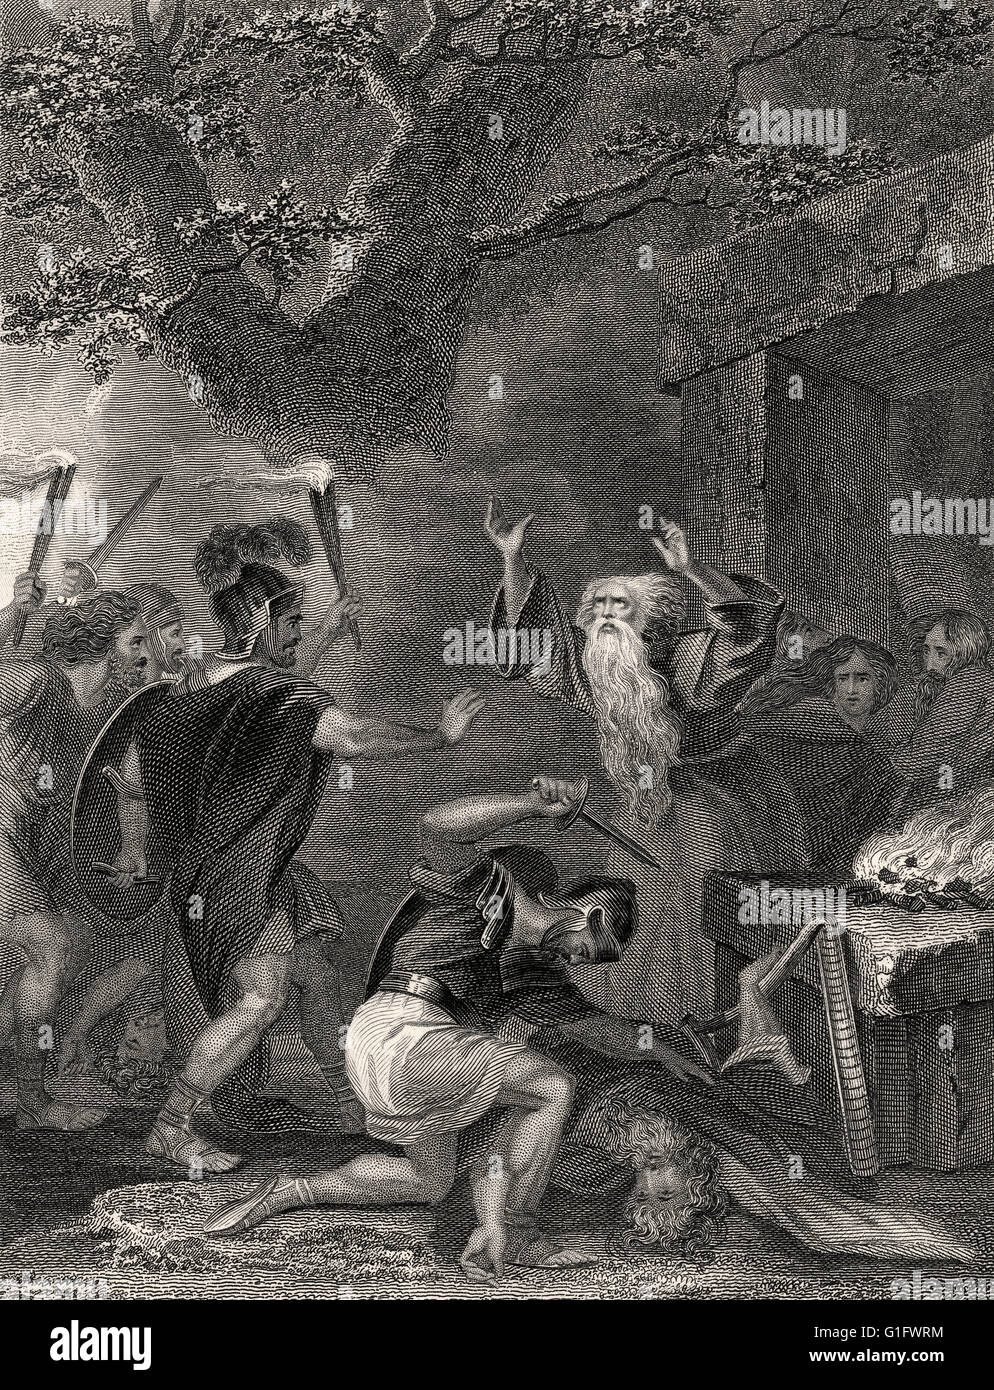 The Roman massacre of the Celtic Druids on the Isle of Anglesey in 61 AD - Stock Image